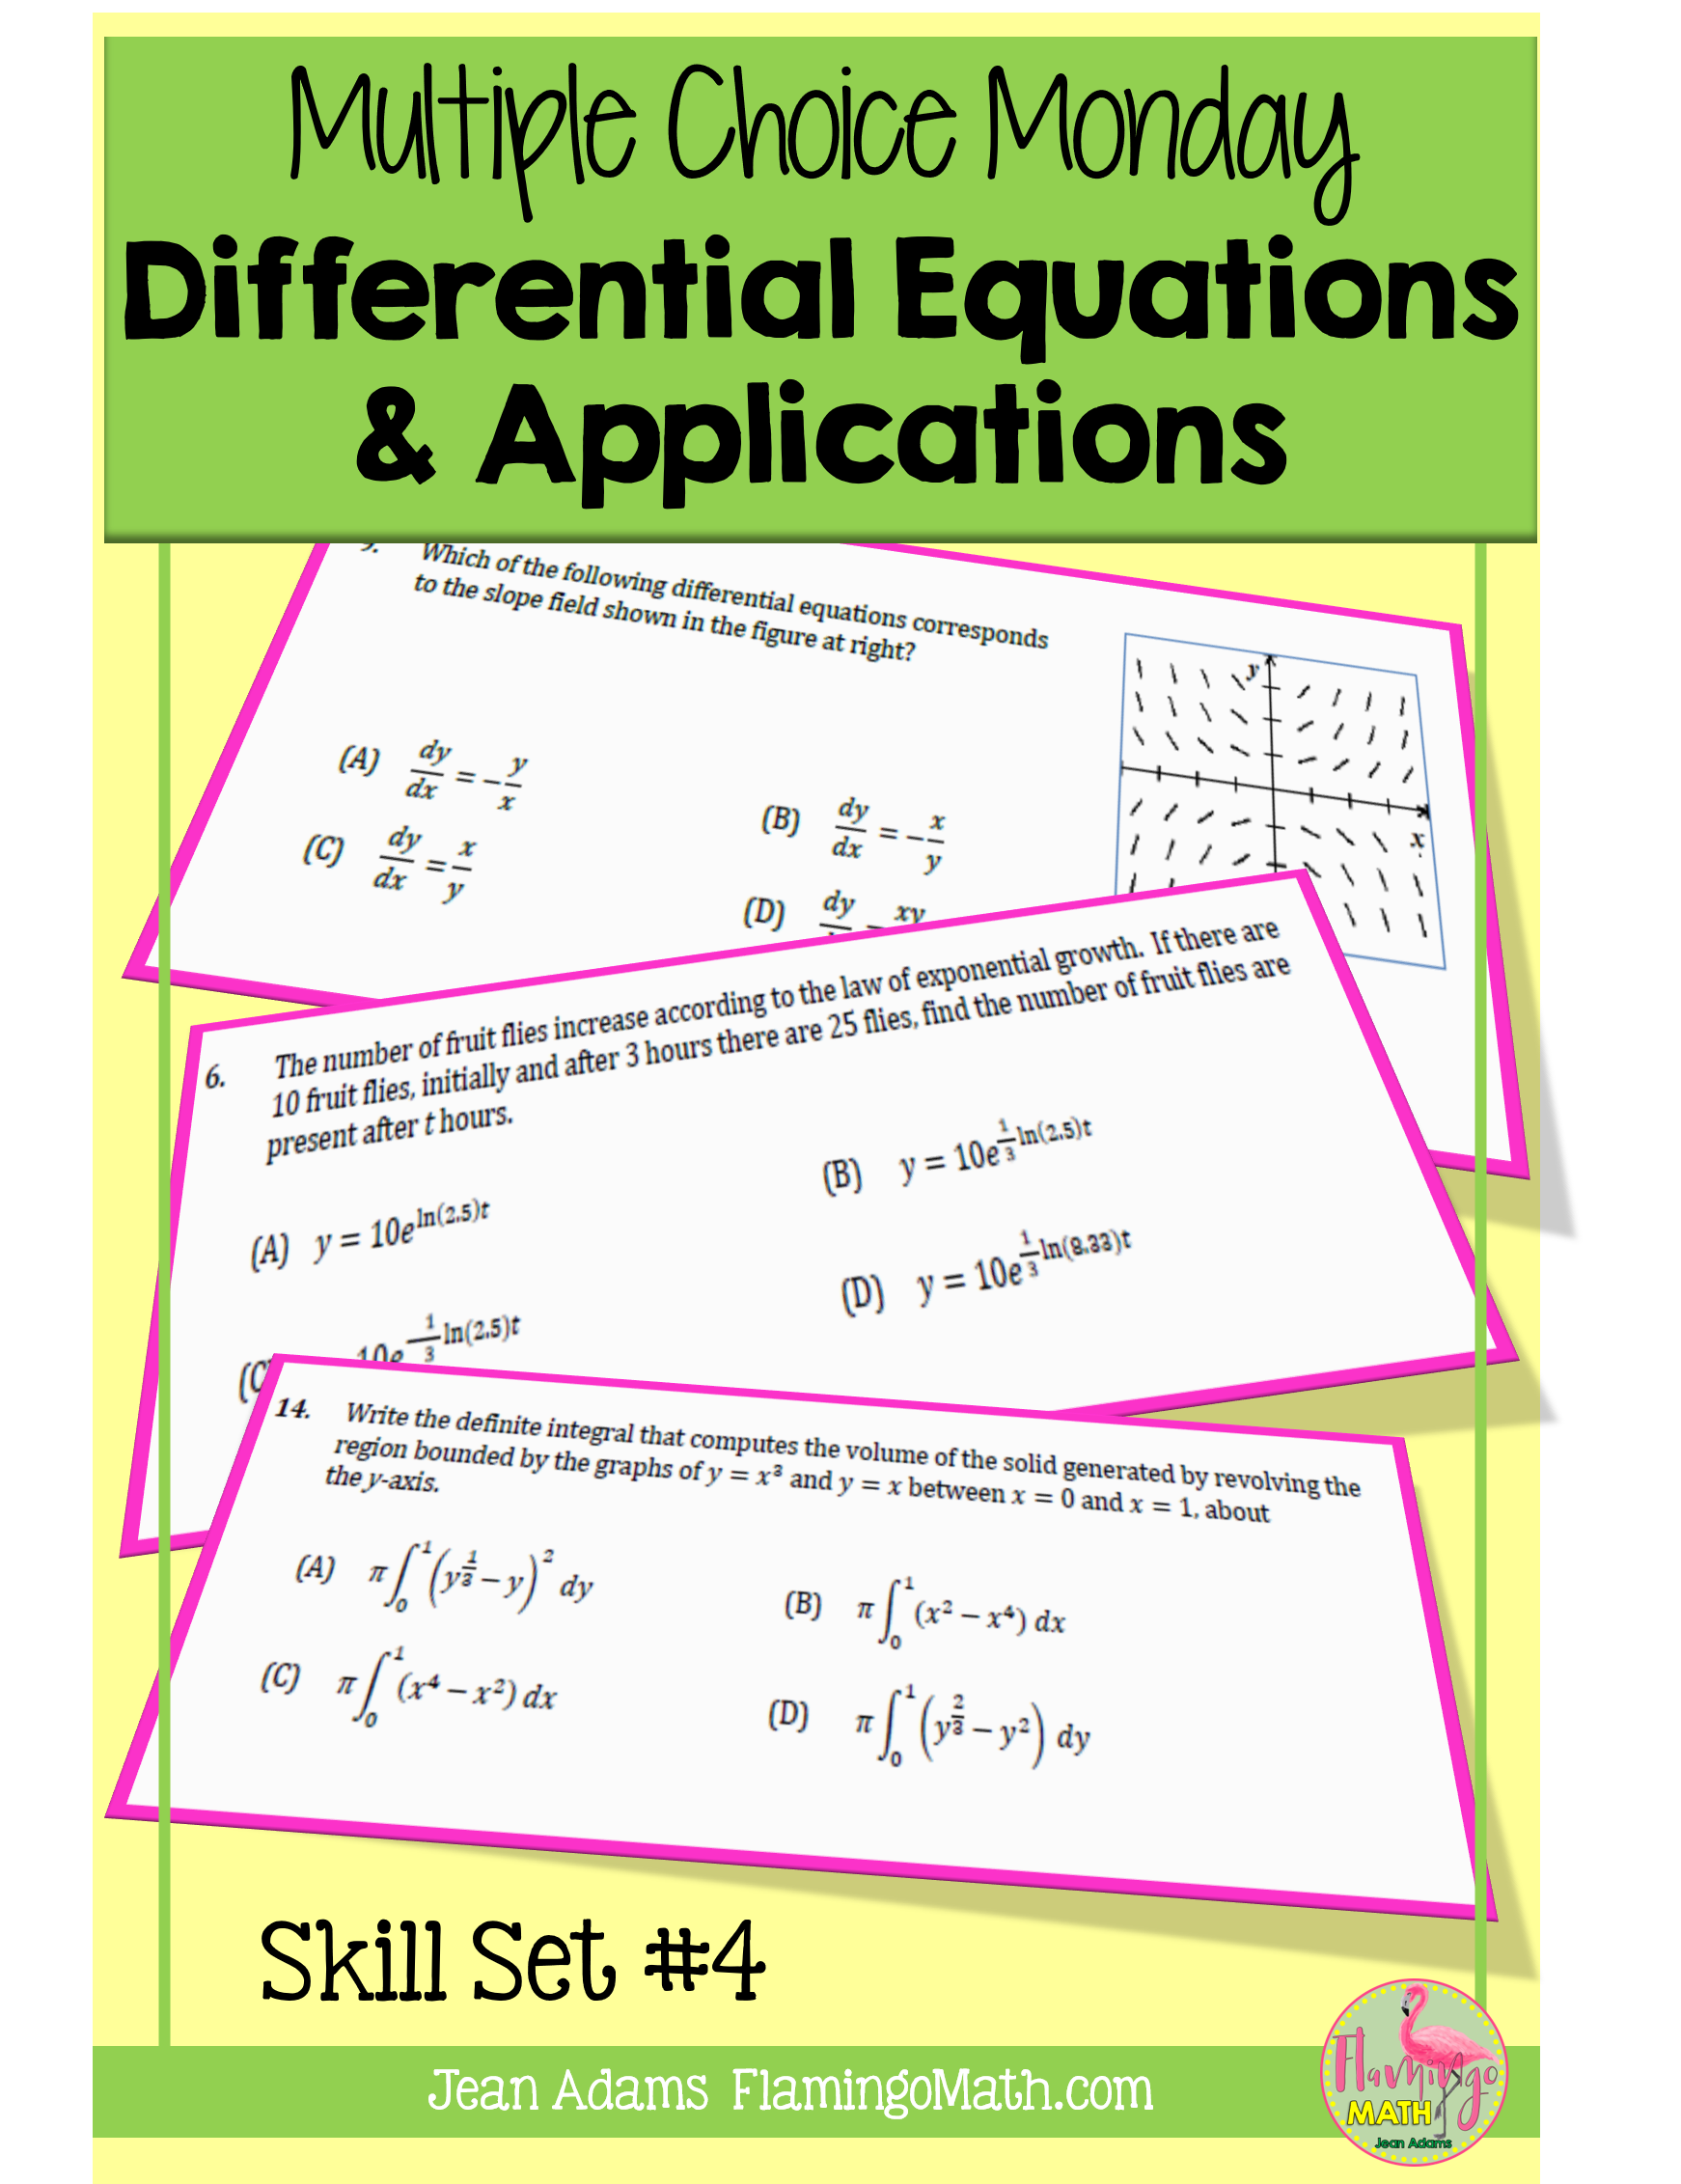 Differential Equations And Applications Ap Calculus Exam